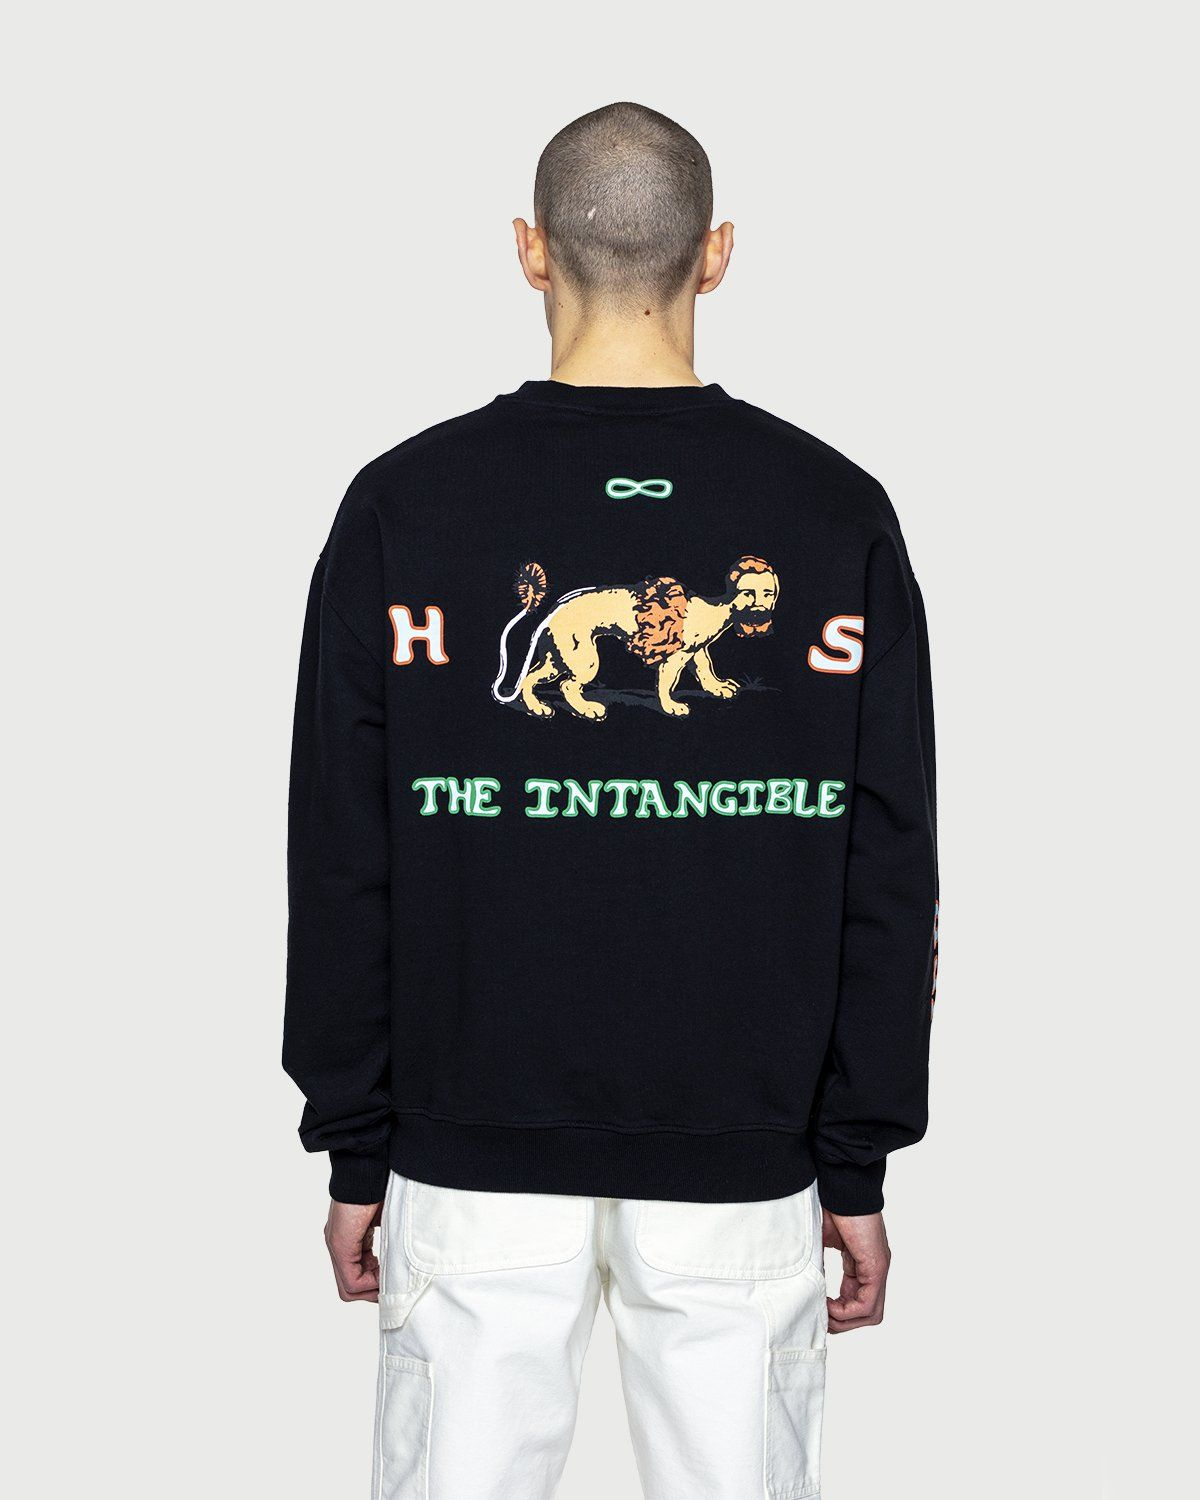 Inner Life by Highsnobiety - The Intangible Sweatshirt Black - Image 8